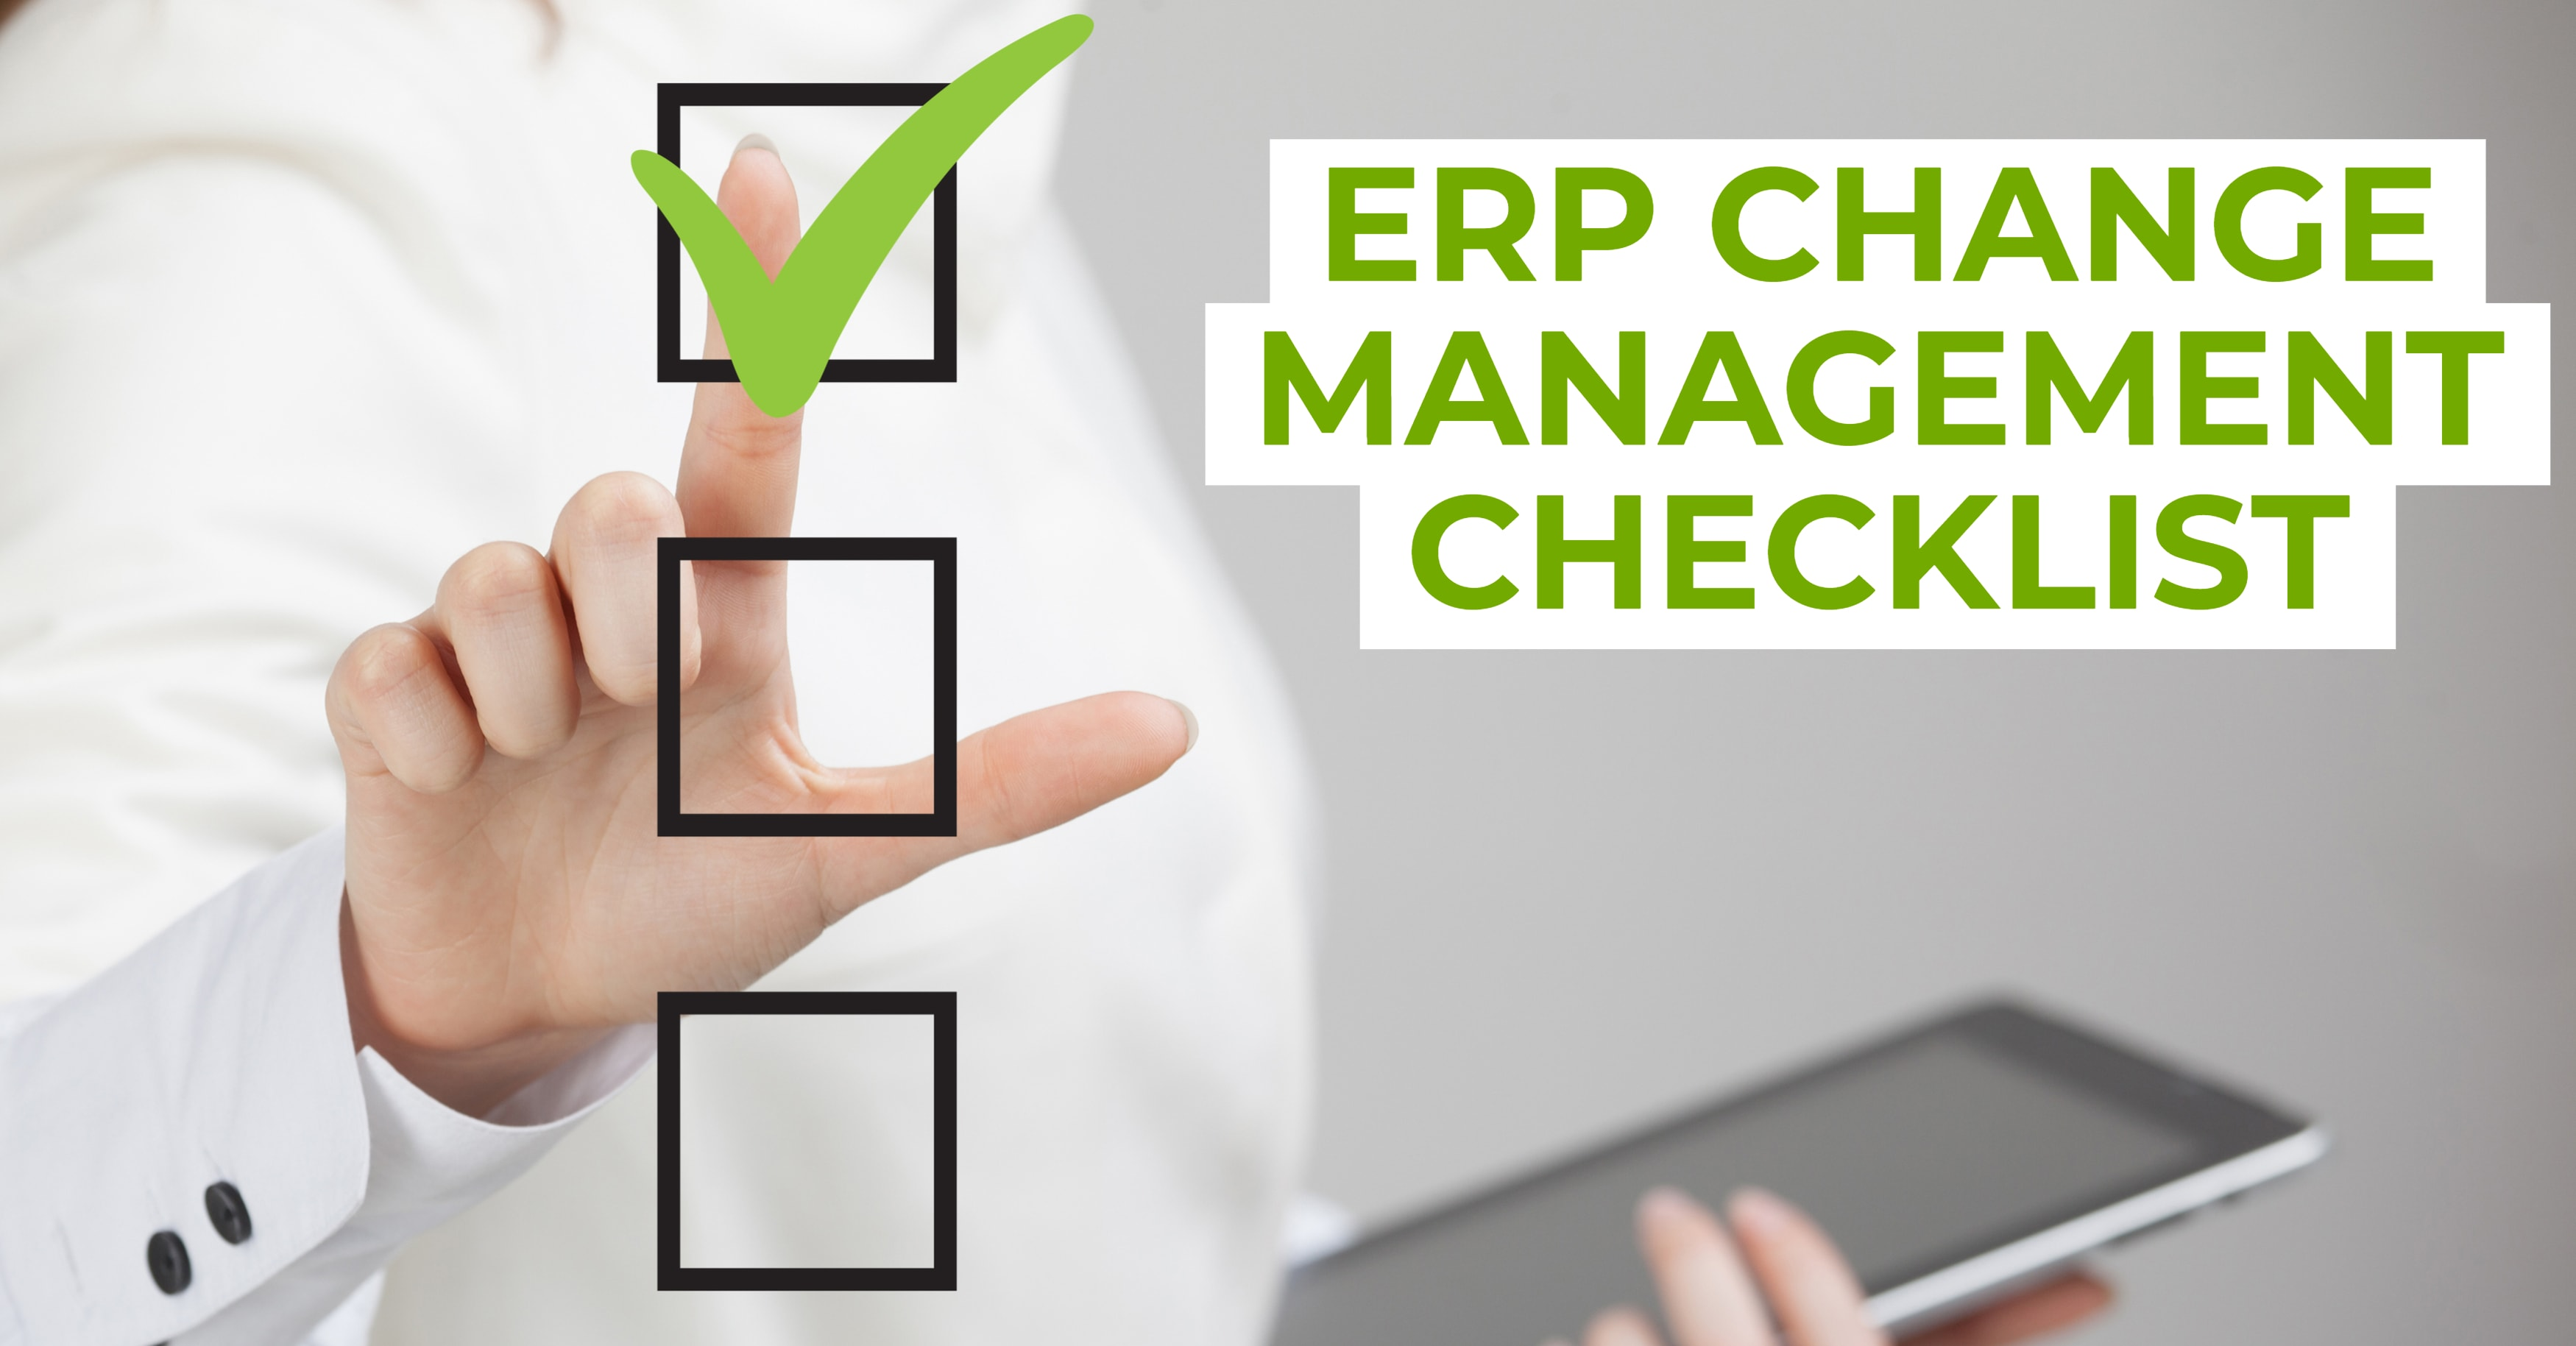 ERP Change Management Checklist